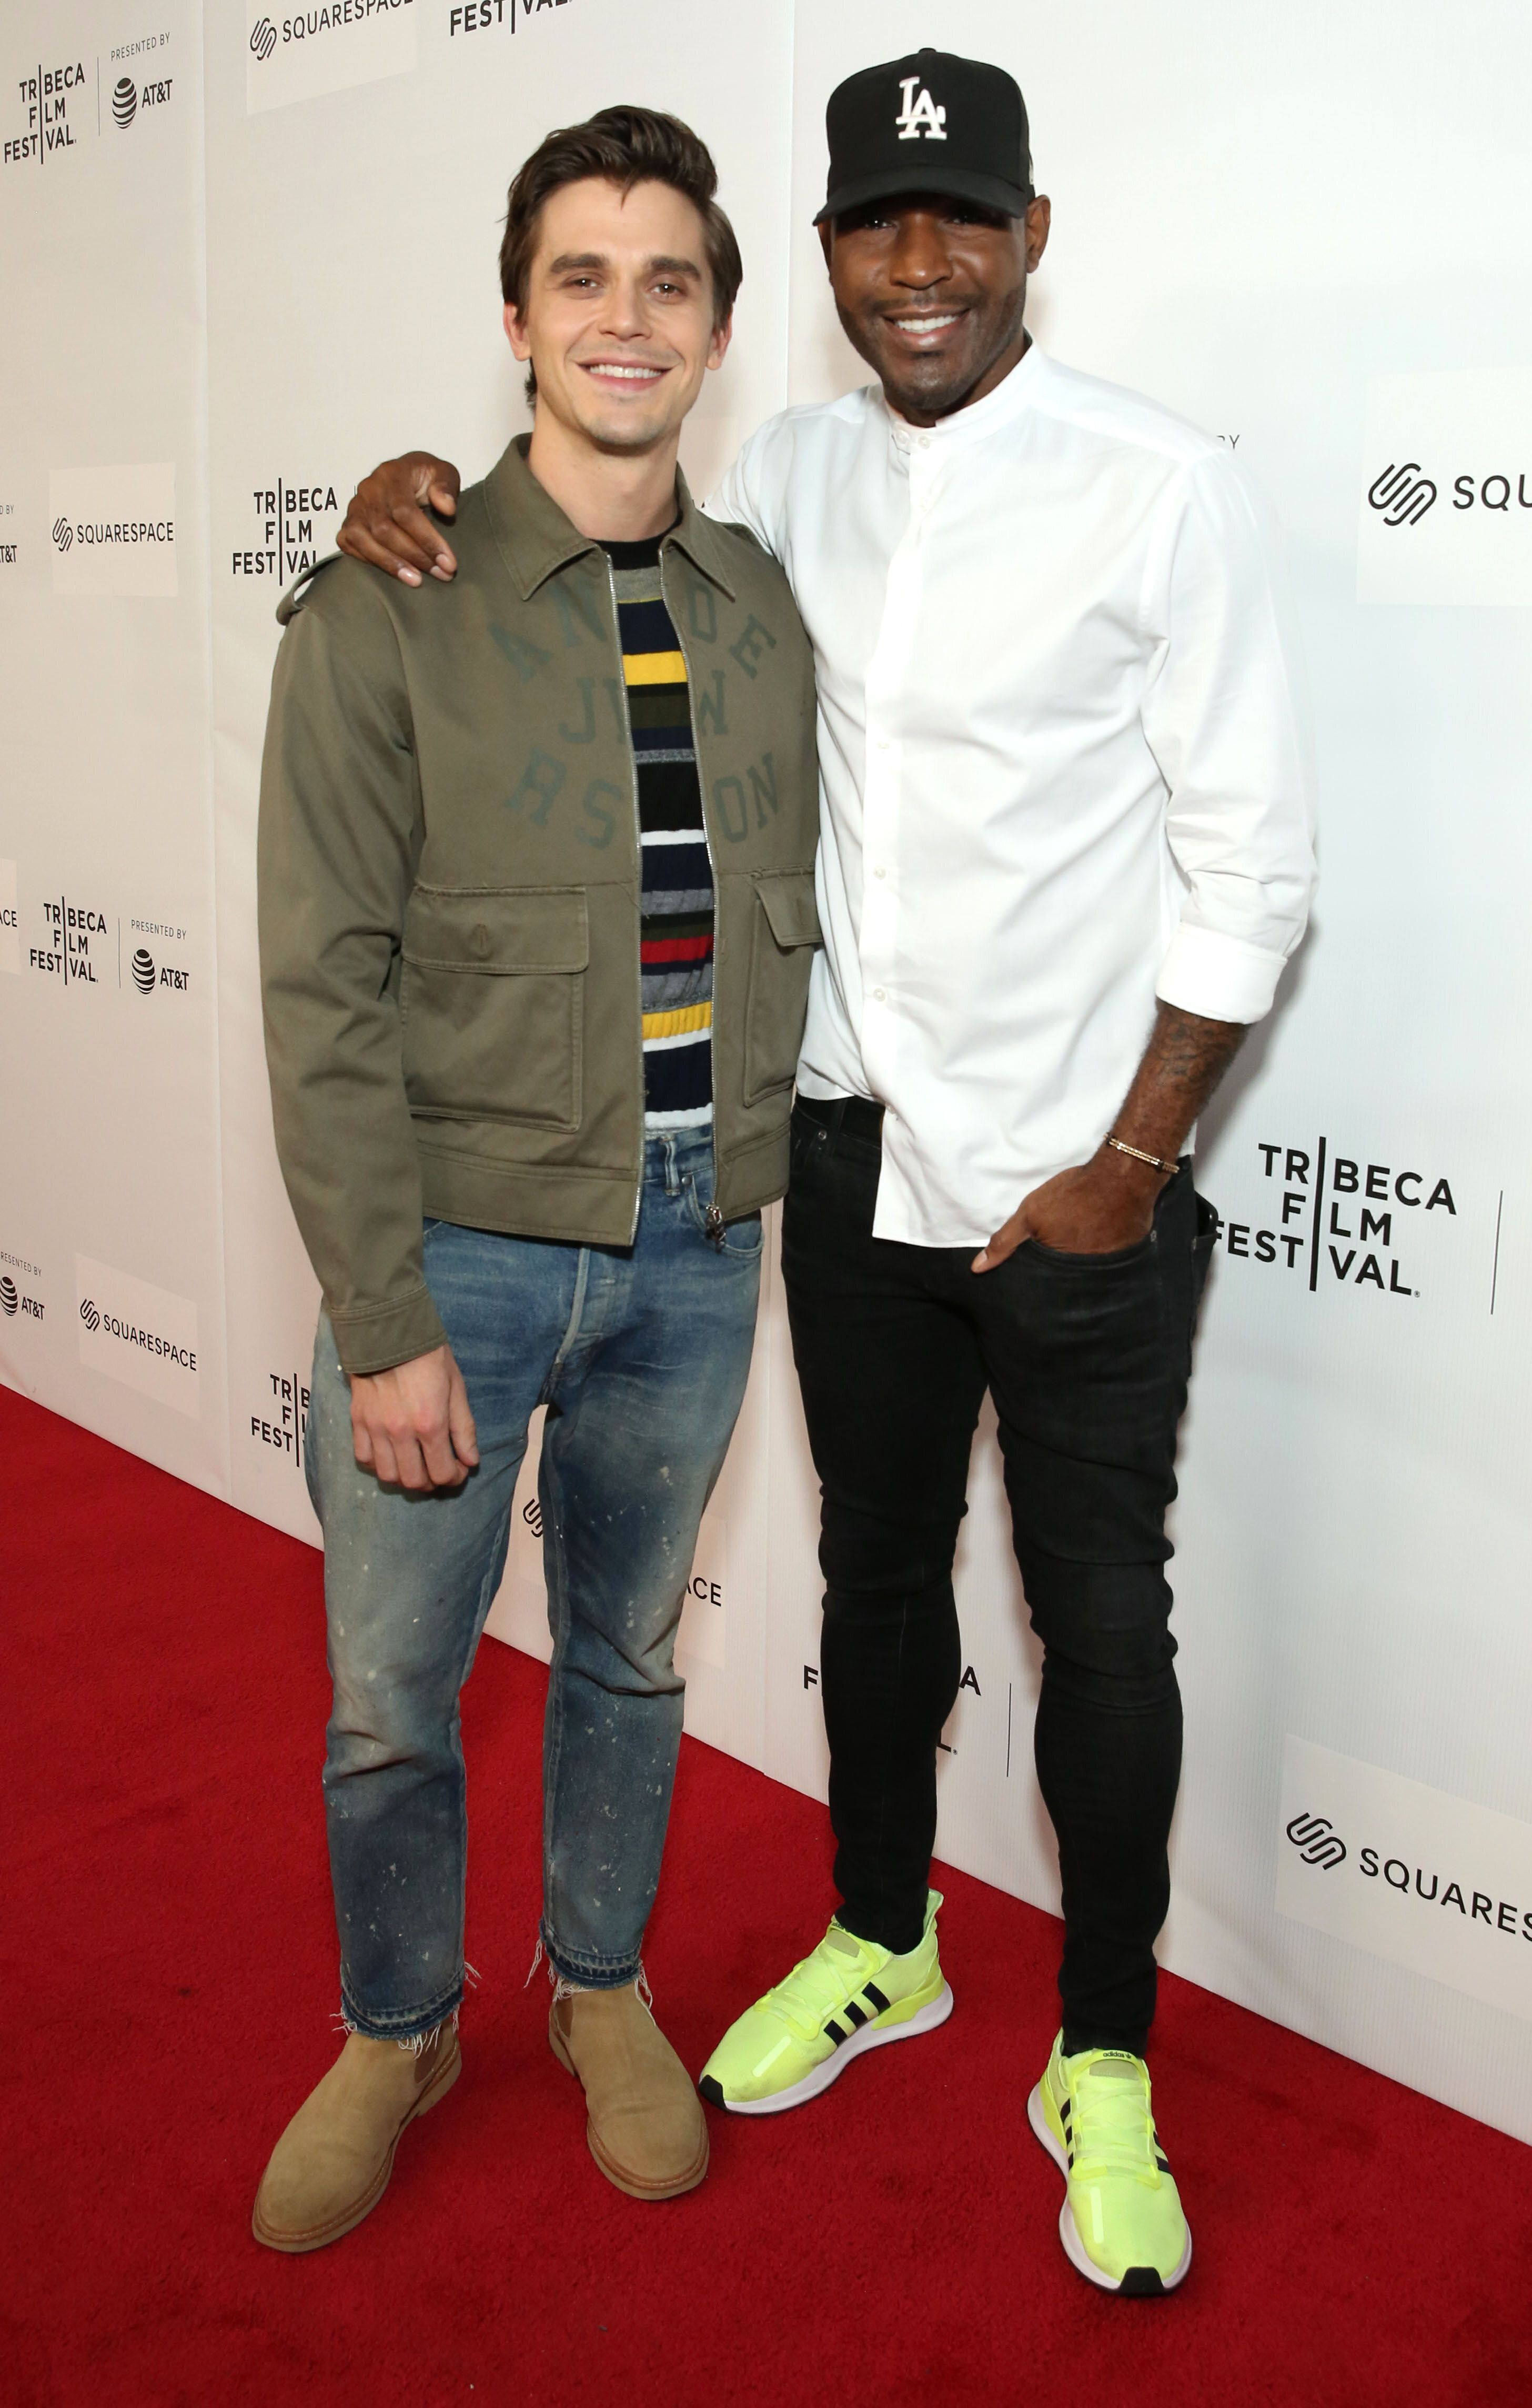 NEW YORK, NEW YORK - APRIL 29: Antoni Porowski and  Karamo Brown attend the World Premiere Of 'GAY CHORUS DEEP SOUTH' Documentary, Developed And Produced By Airbnb At The 2019 Tribeca Film Festival at Marriott Bonvoy Boundless Theatre on April 29, 2019 in New York City. (Photo by Monica Schipper/Getty Images for Airbnb)